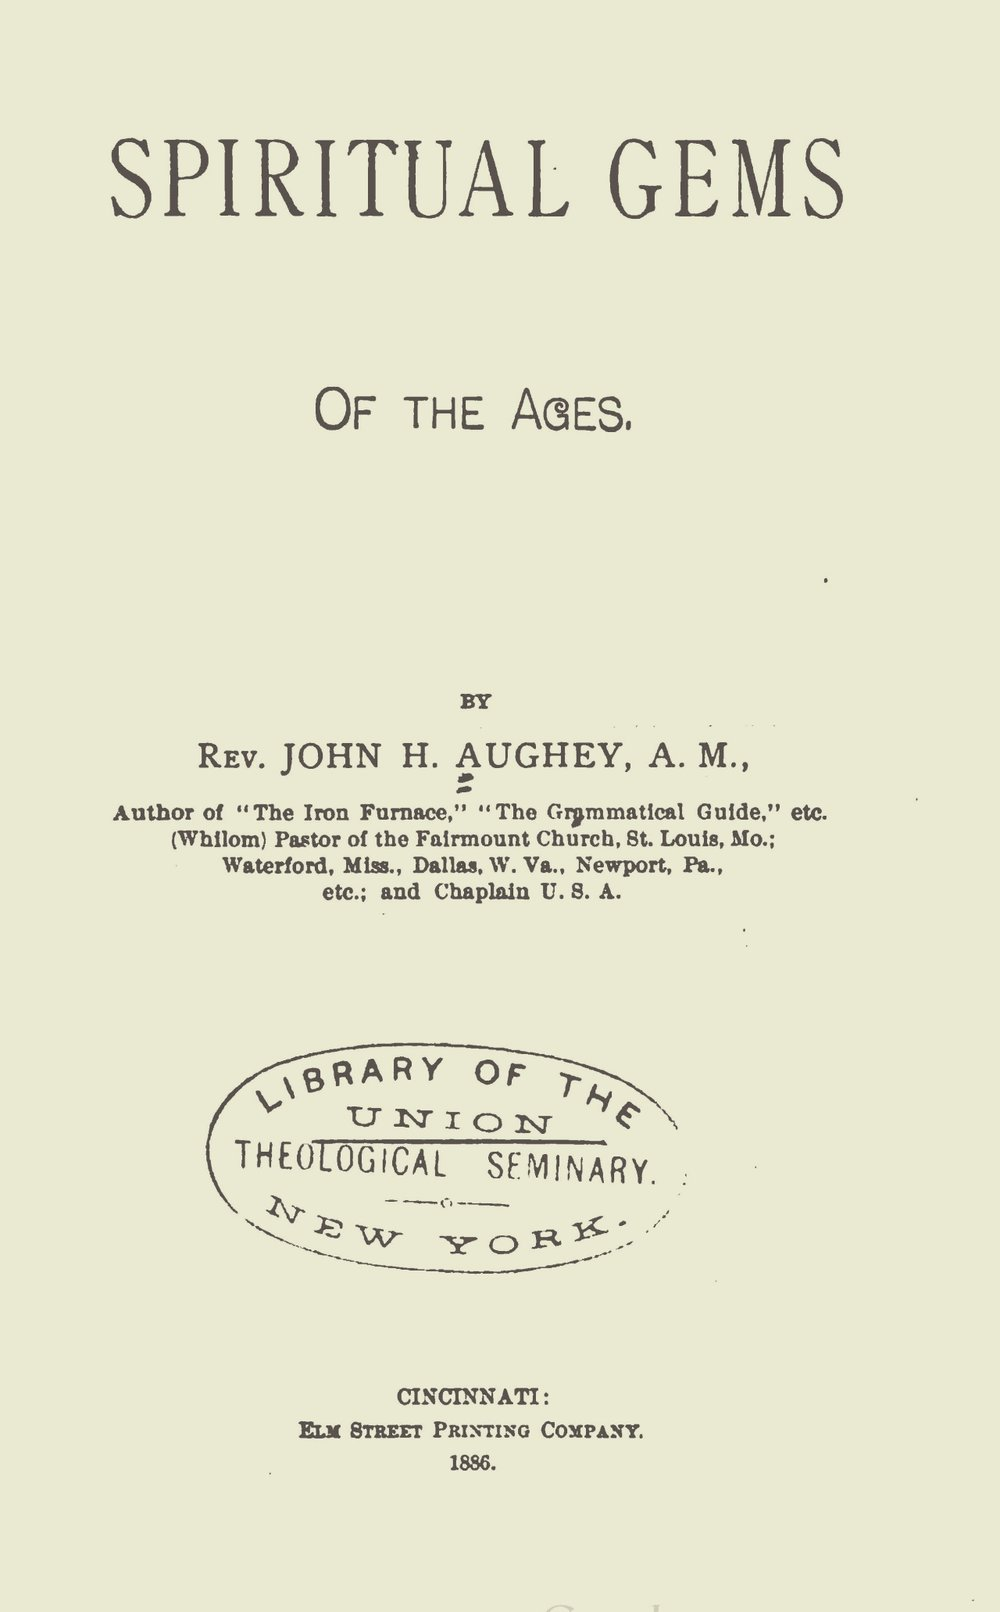 Aughey, John Hill, Spiritual Gems of the Ages Title Page.jpg